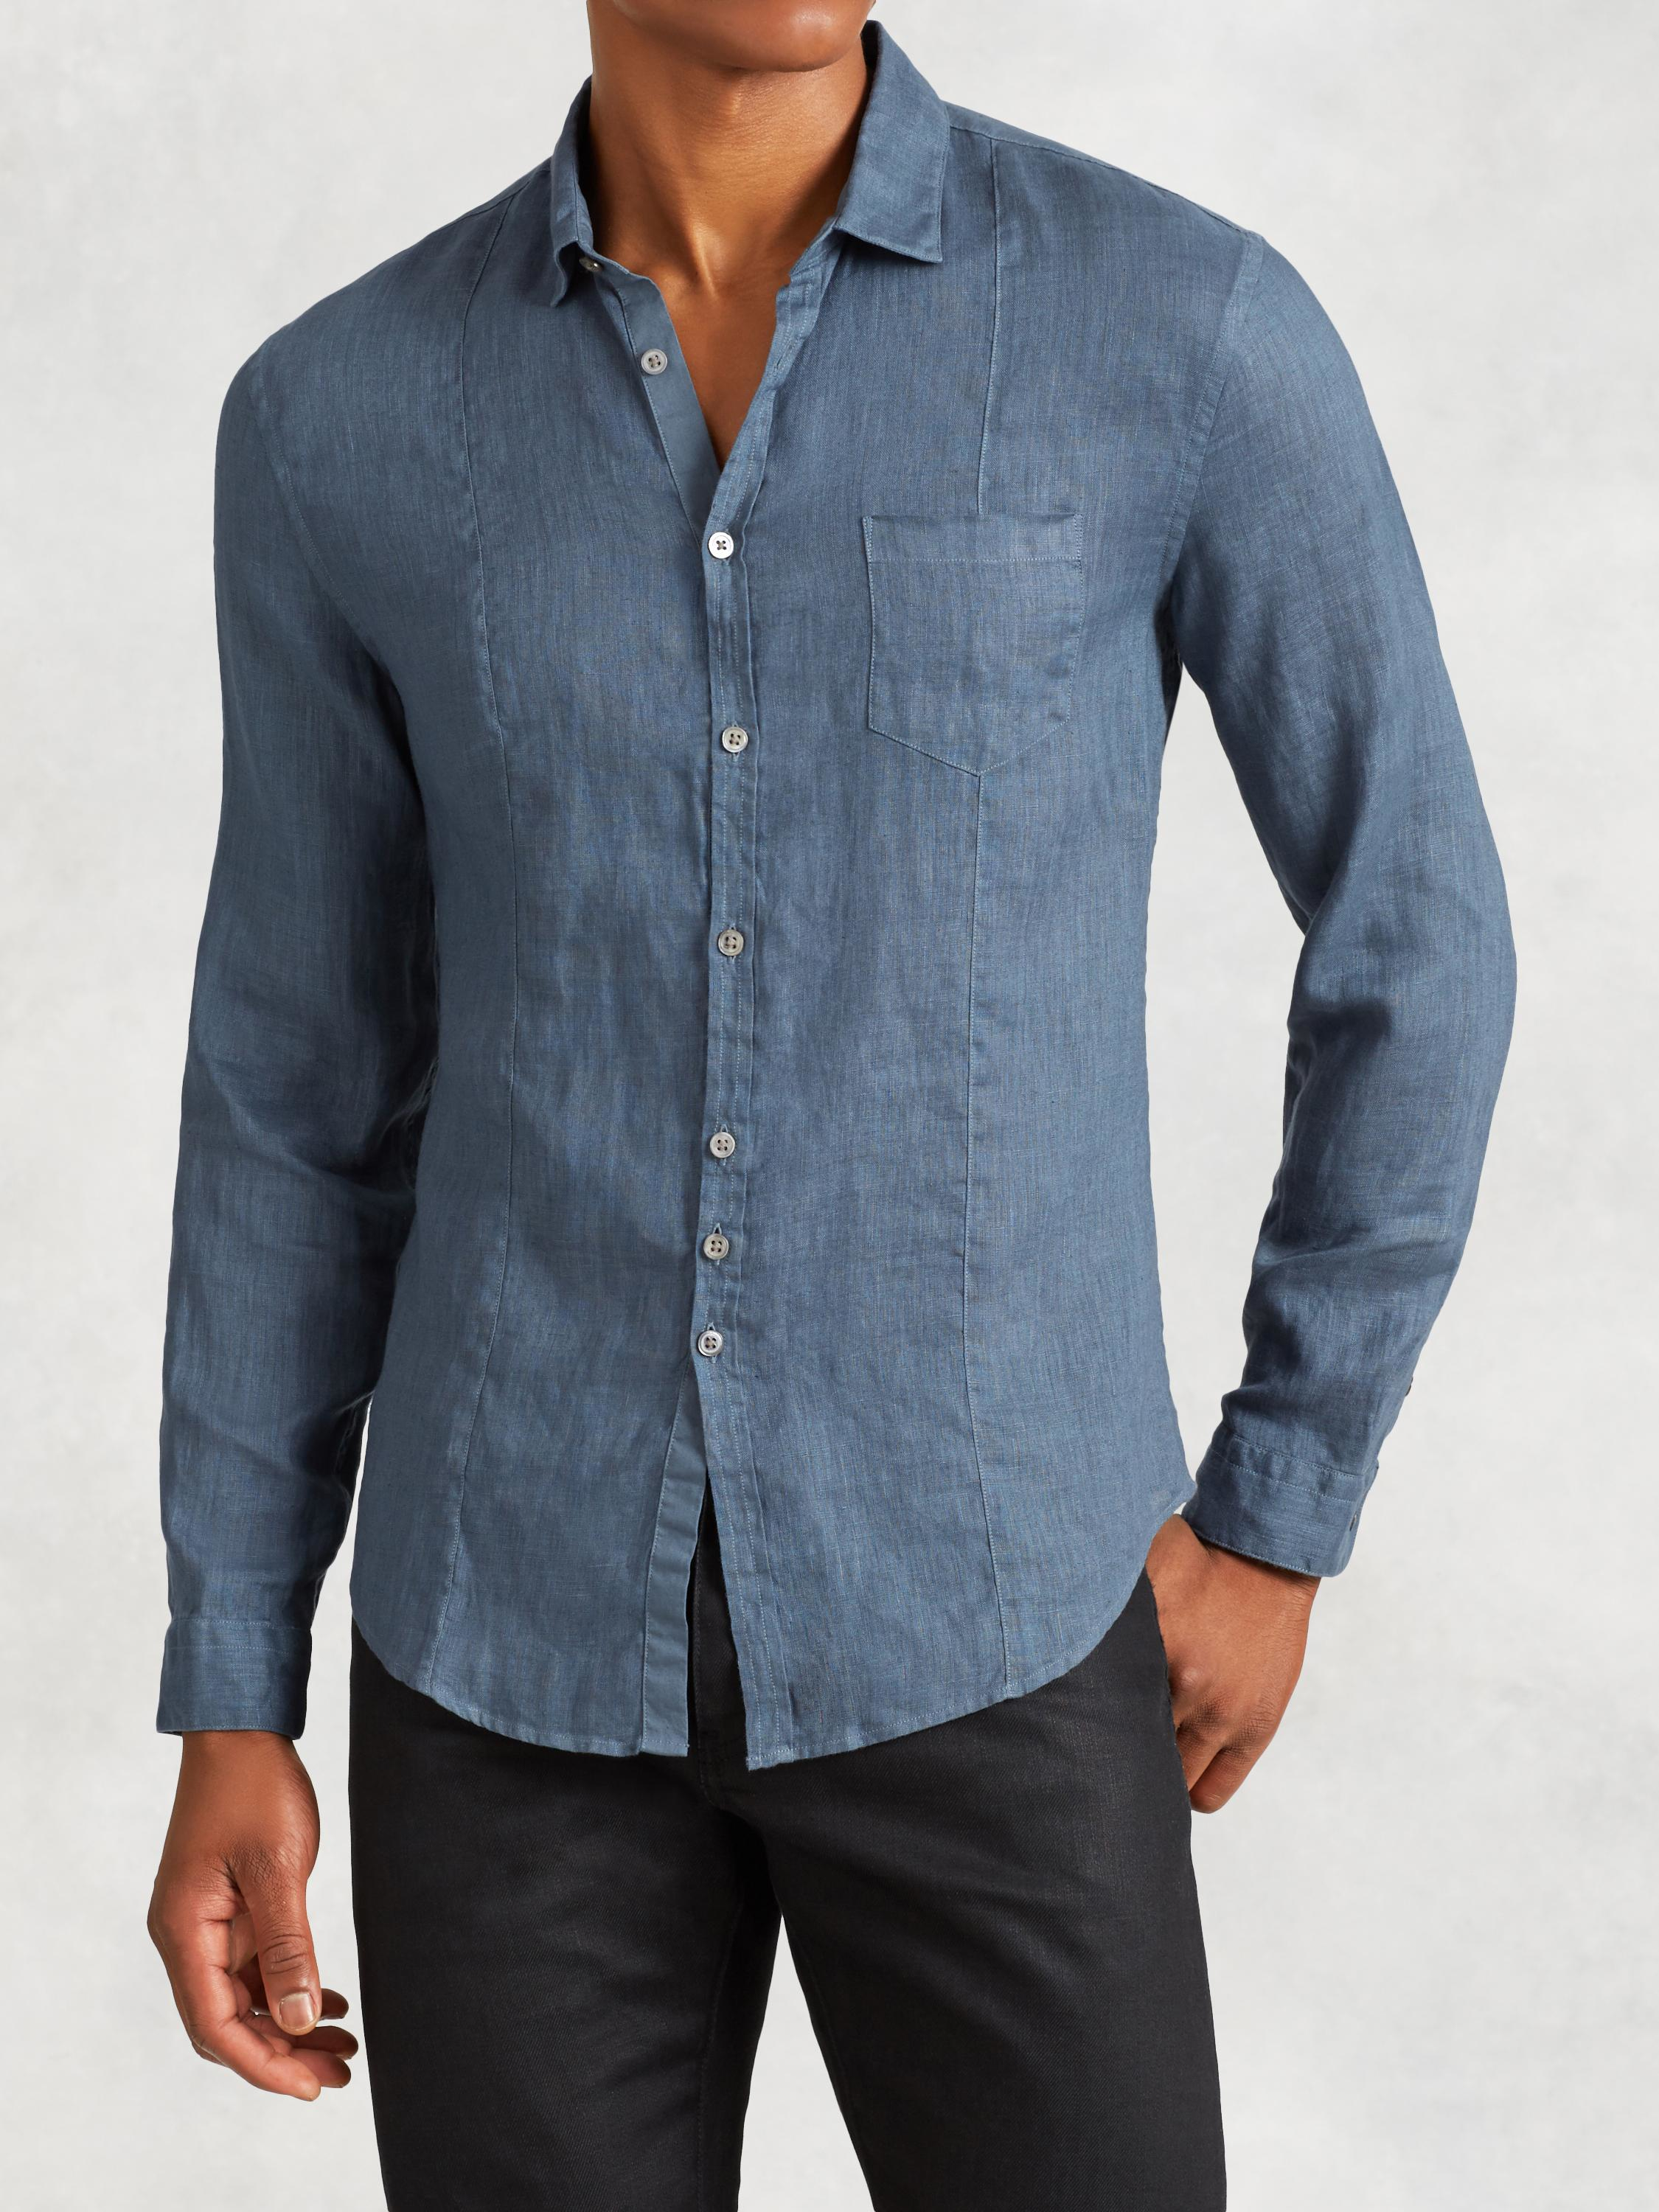 Often overshadowed by the ubiquity of cotton shirts, the men's linen shirt is the original technical fabric. Air easily flows through linen allowing your body to breathe, and the natural stiffness of the cloth makes it less likely to cling.